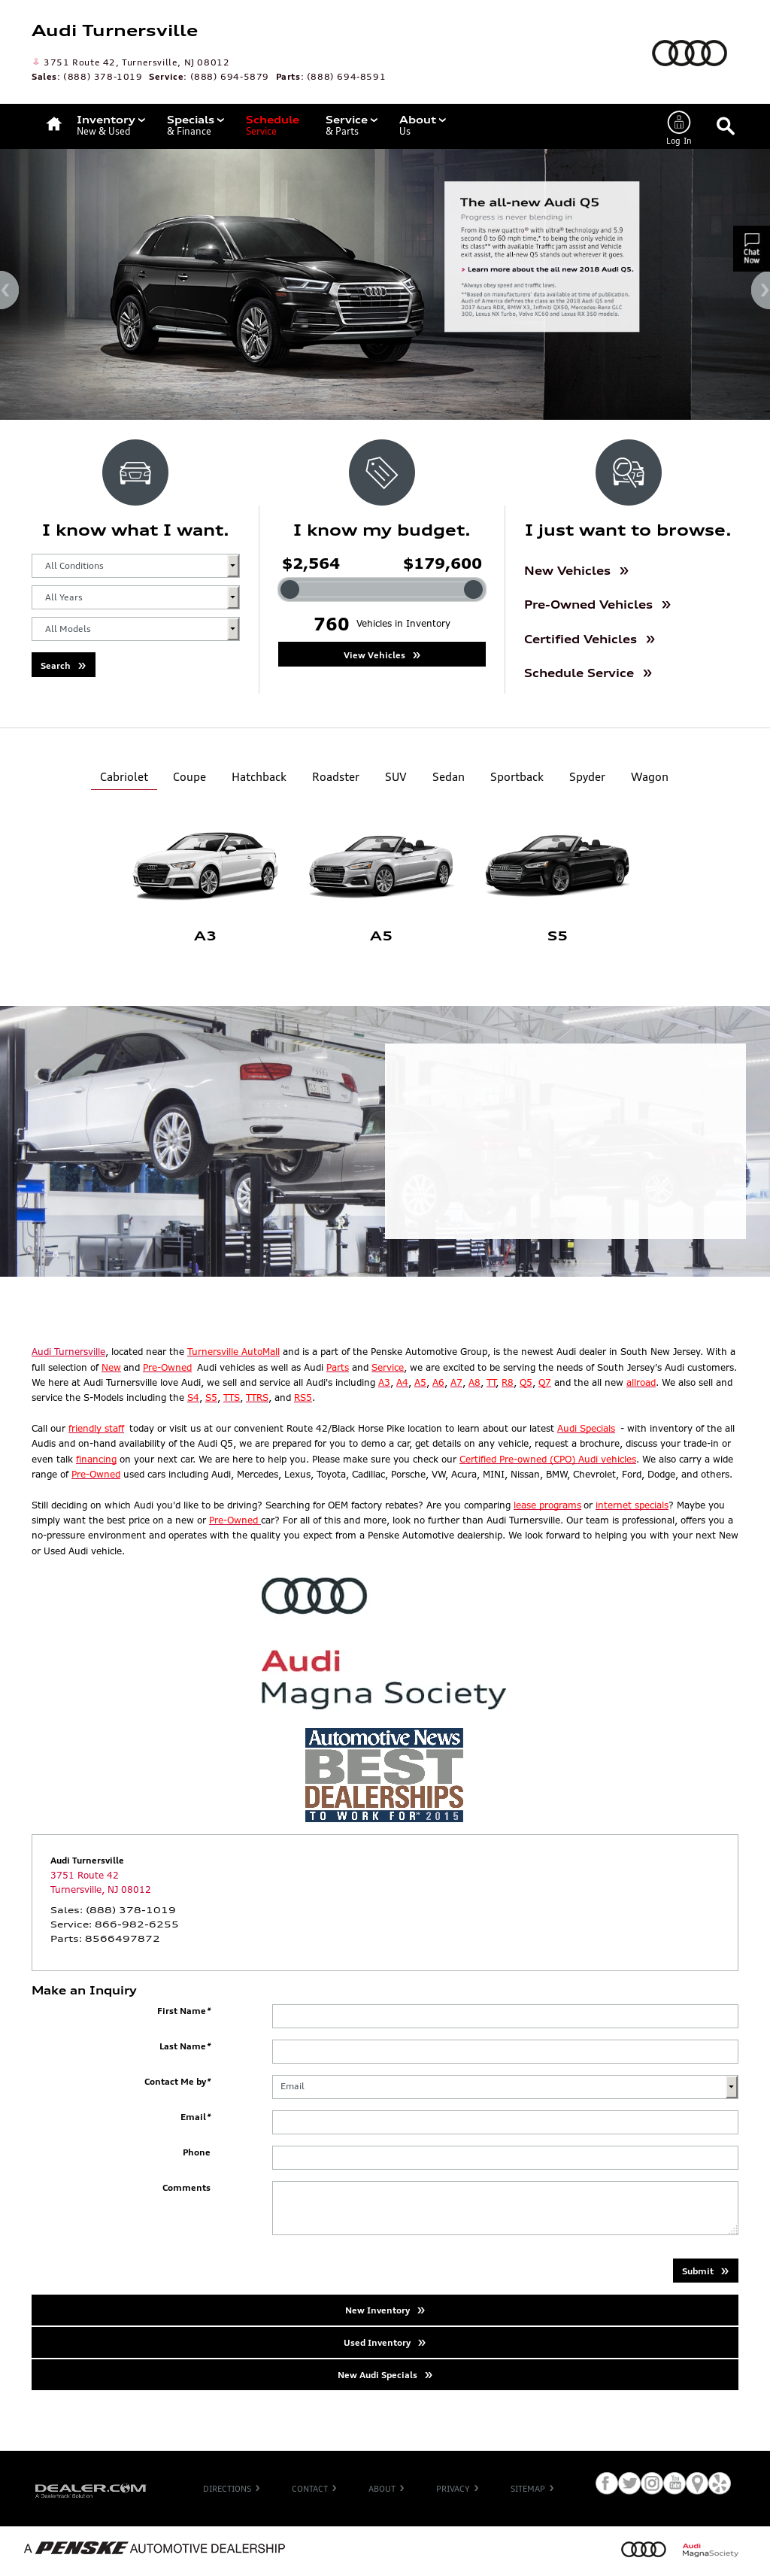 Audi Turnersville Competitors Revenue And Employees Owler Company - Audi turnersville